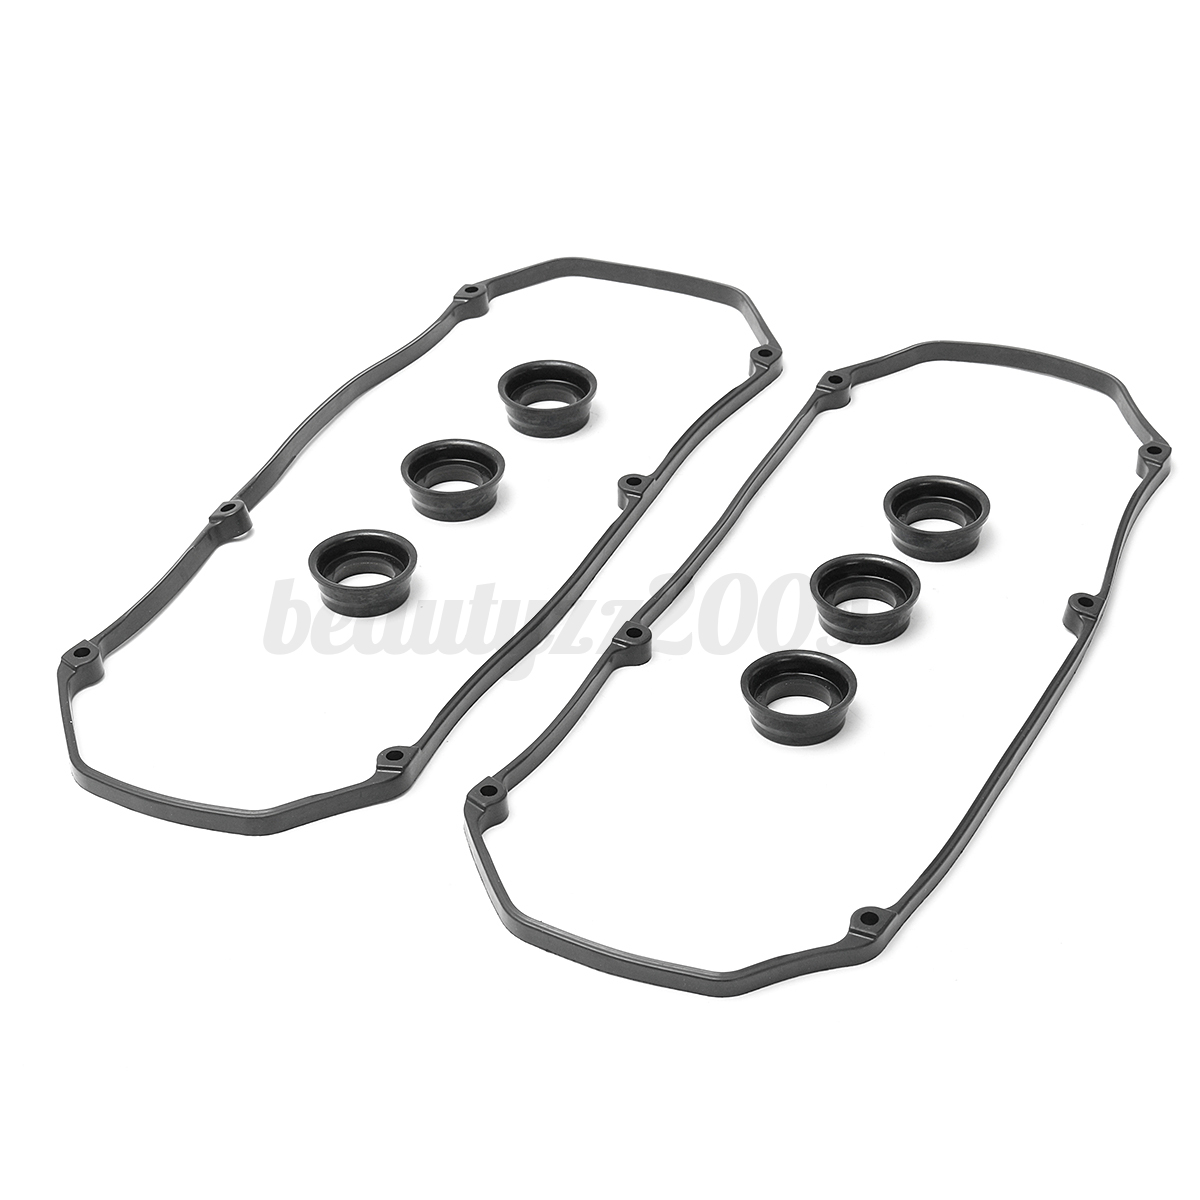 Valve Cover Gasket Set For Dodge Chrysler Dodge 95 06 3 0 3 5 3 8 6g72 6g74 6g75